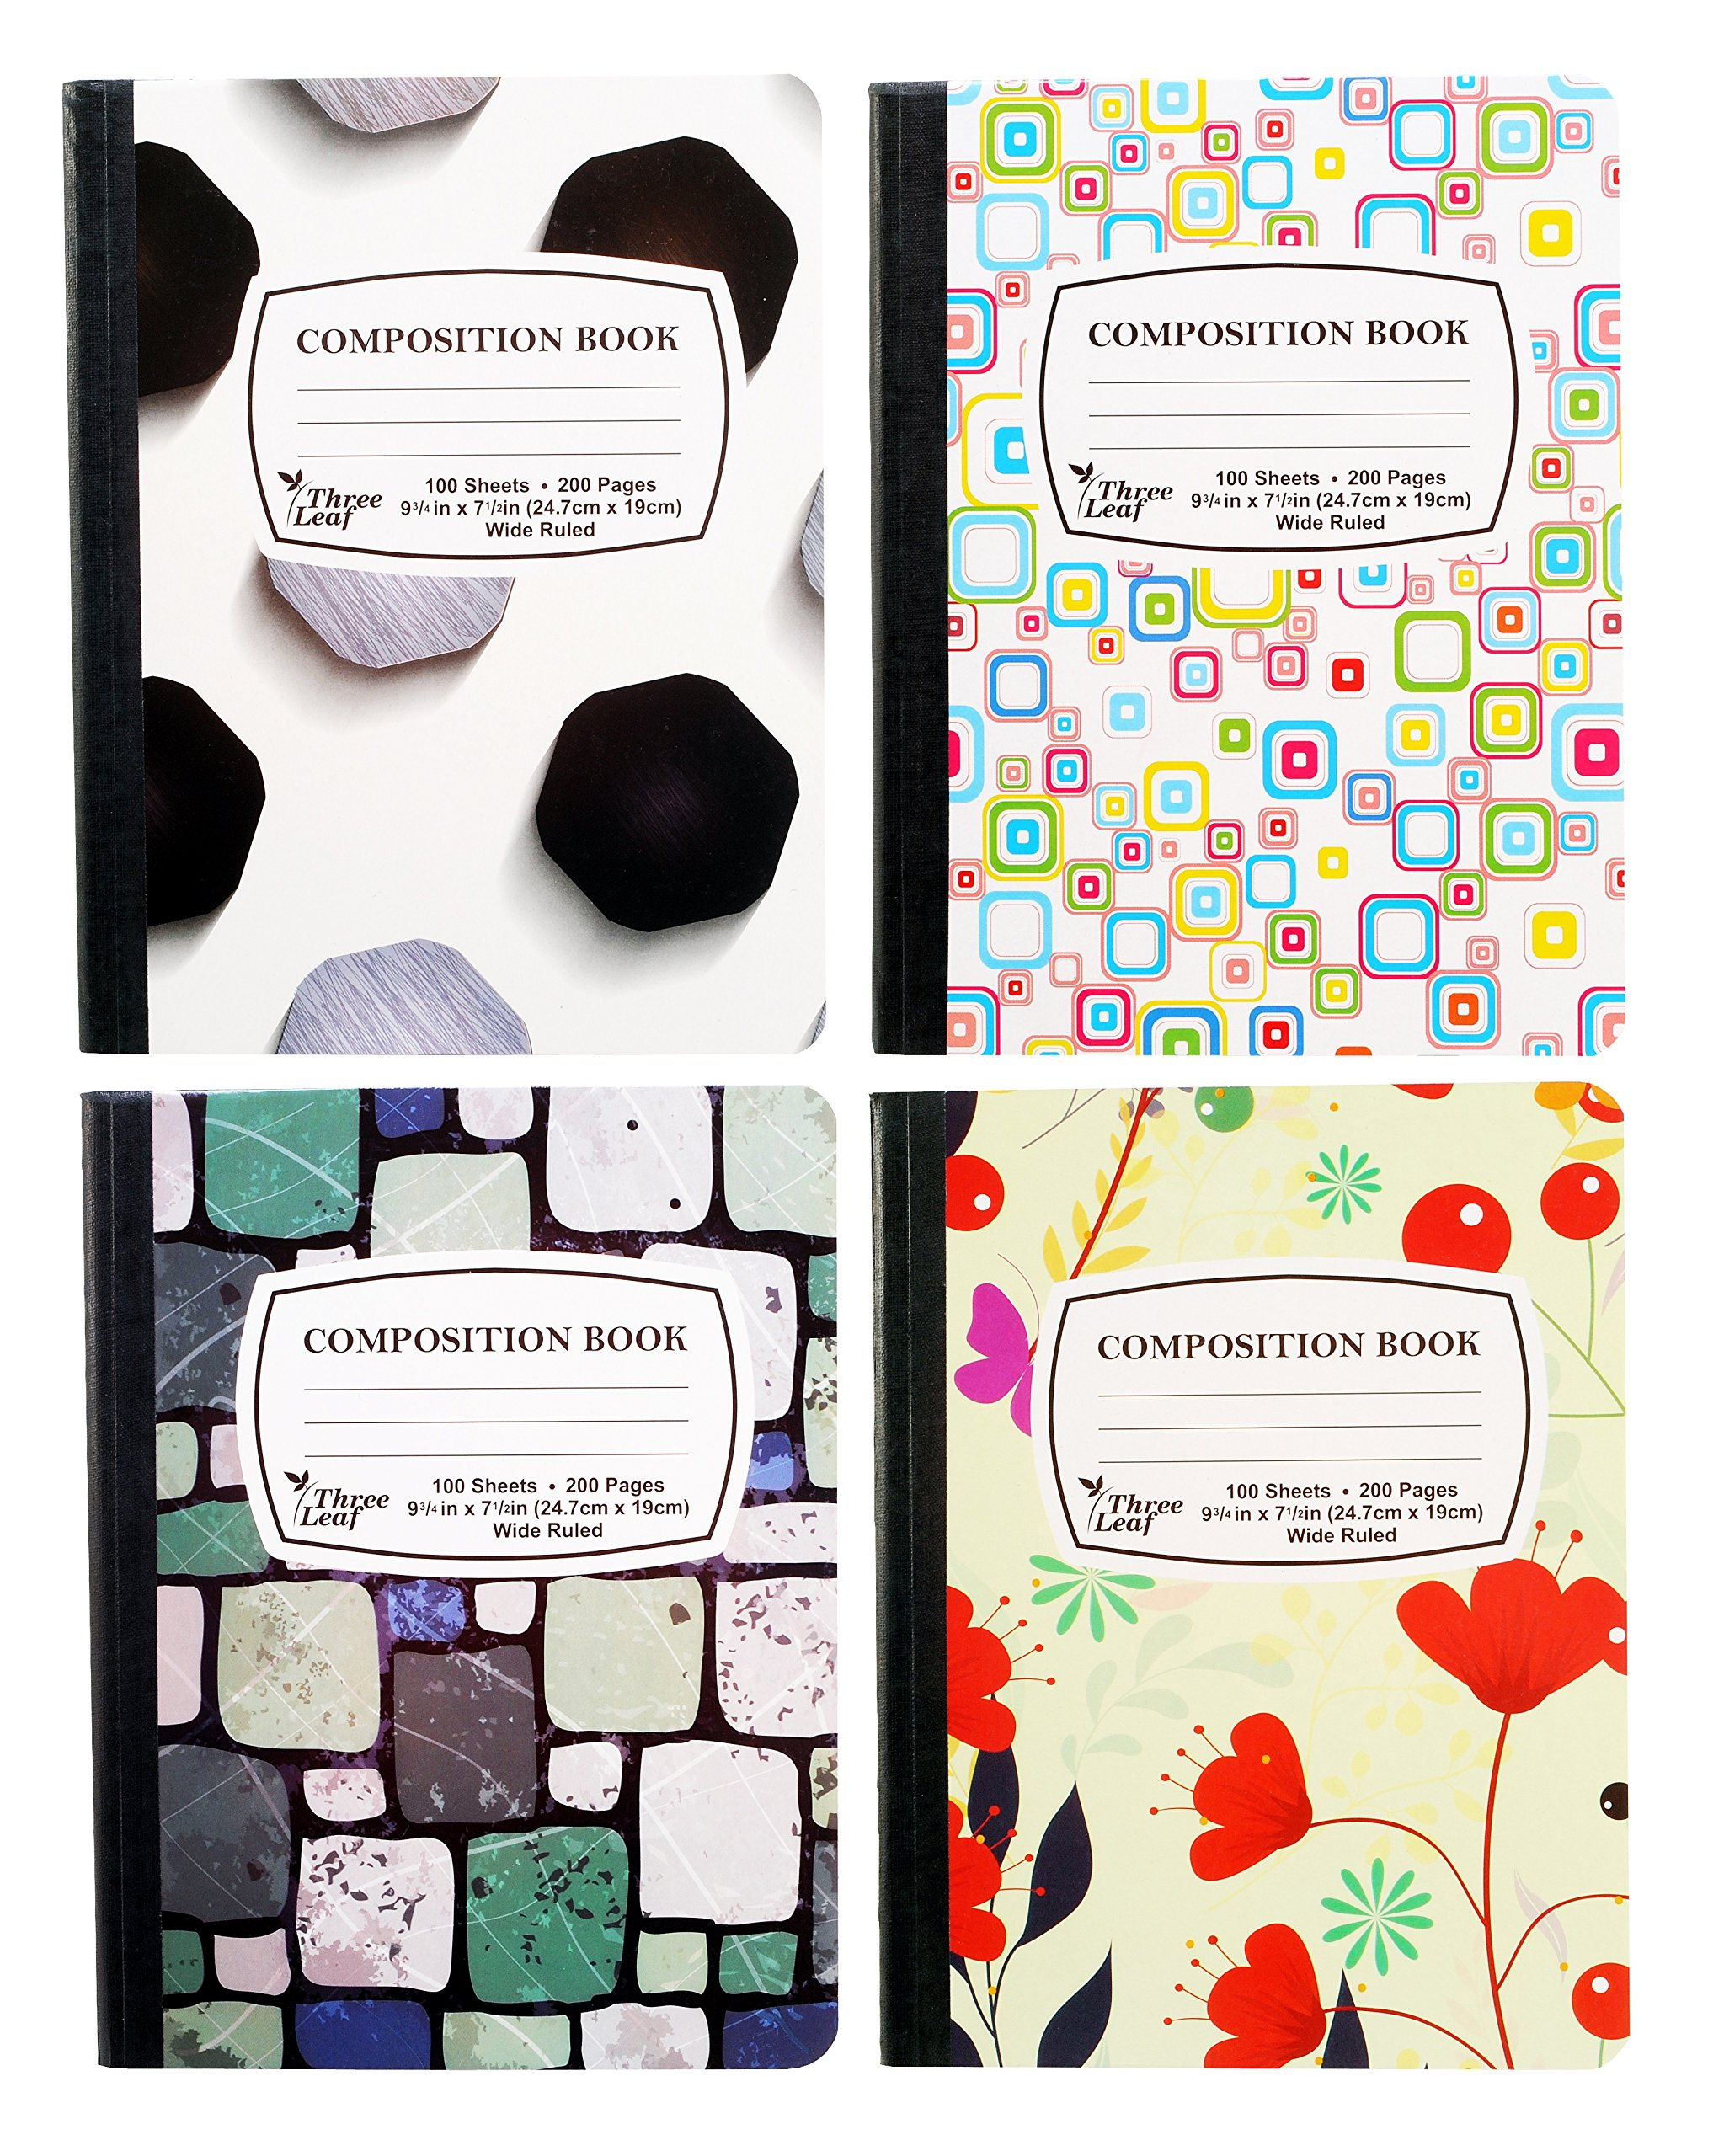 4-Pack Composition Notebook, 9-3/4'' x 7-1/2'', Wide Ruled, 100 Sheet (200 Pages), Weekly Class Schedule and Multiplication/Conversion Tables on Covers - Styles: Tiles, Flowers, Shapes, Spots (4-Pack)